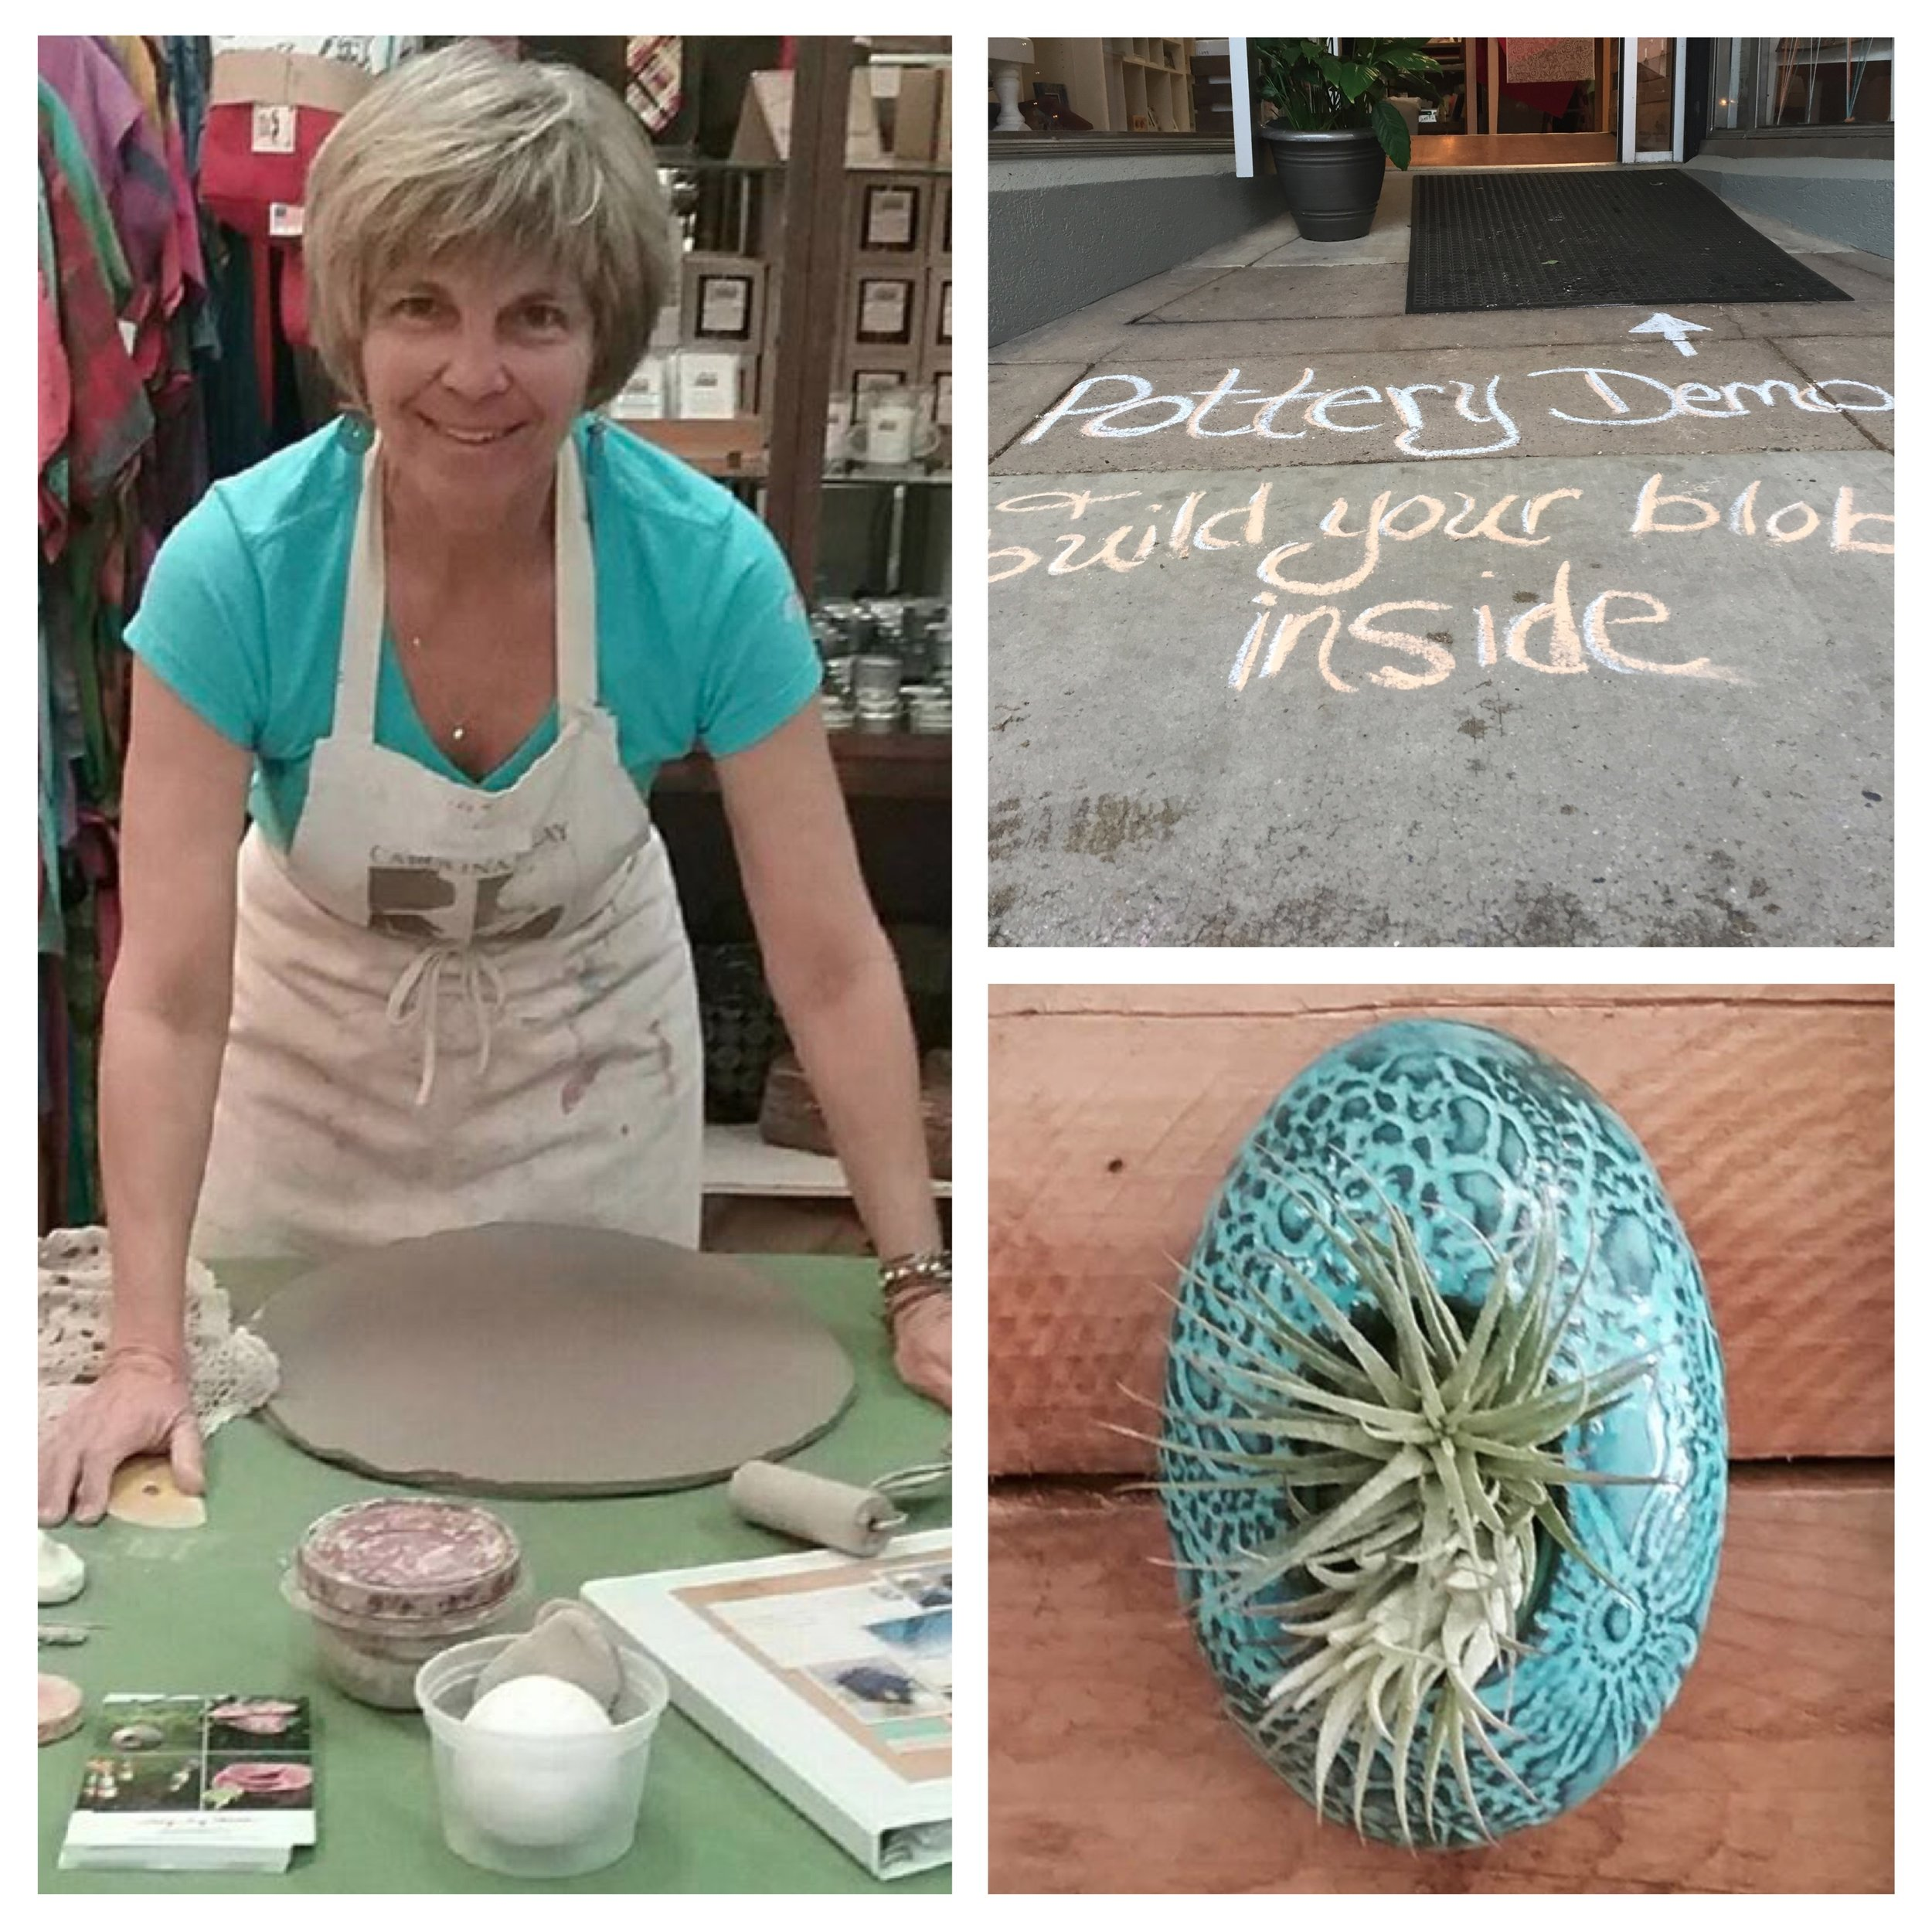 Saturday was an all-day/night affair at my favorite Frederick shop --  The Muse . The town hosts monthly First Saturday events. The Mayfest theme this month invited visitors to collect flowers at participating shops to build a bouquet as they meander. 'Blobs' (named because of their oval shape and ability to morph into several uses) were the featured clay item for the event! I demonstrated how these are made and had fun talking with a steady stream of customers.